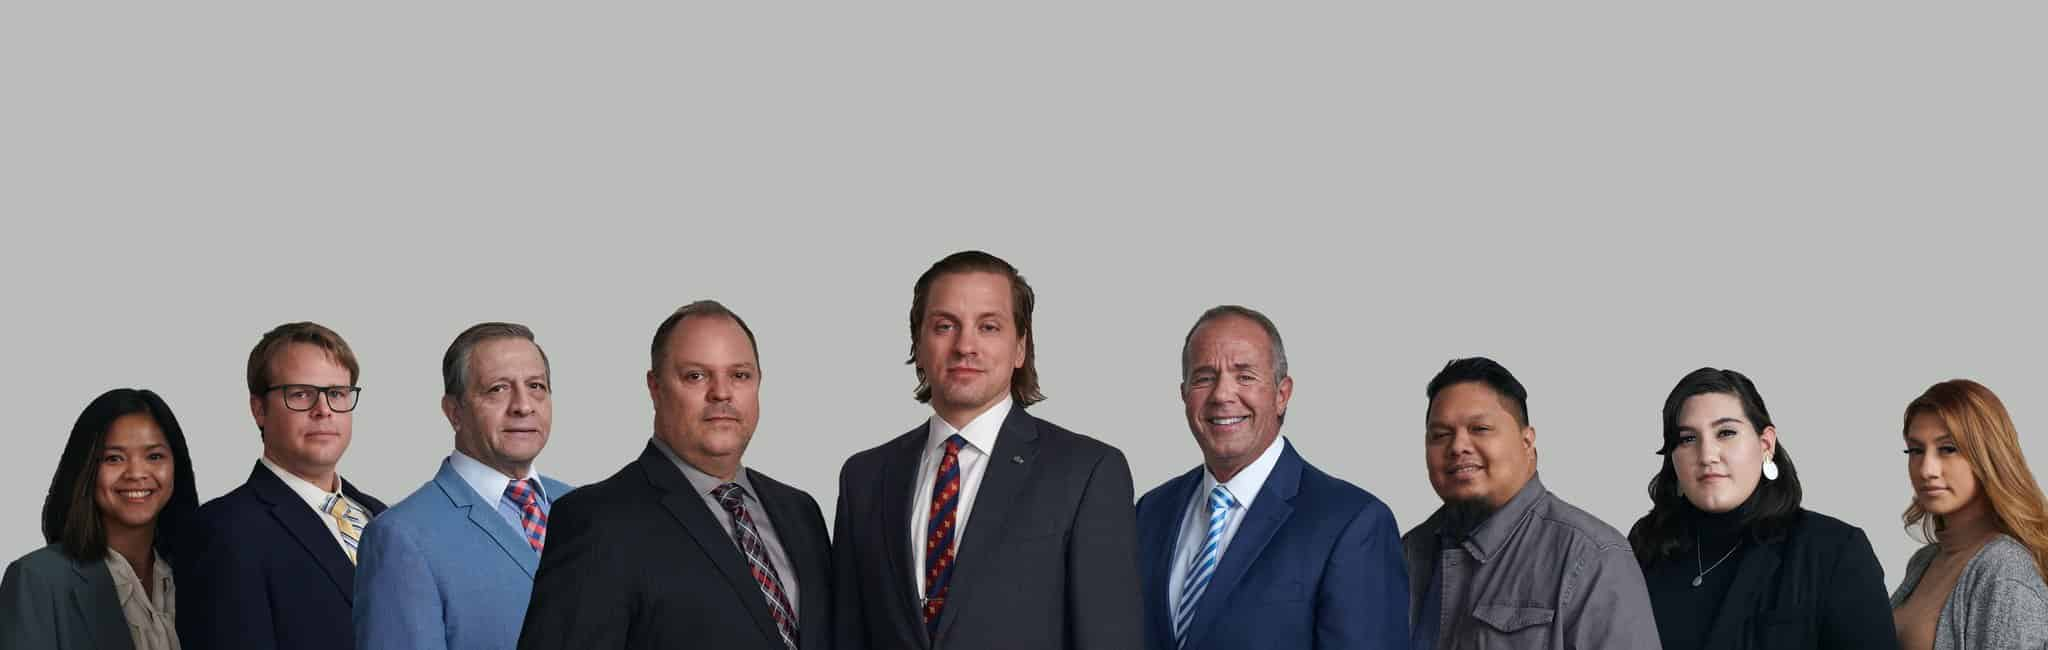 Weber Law Firm team photo